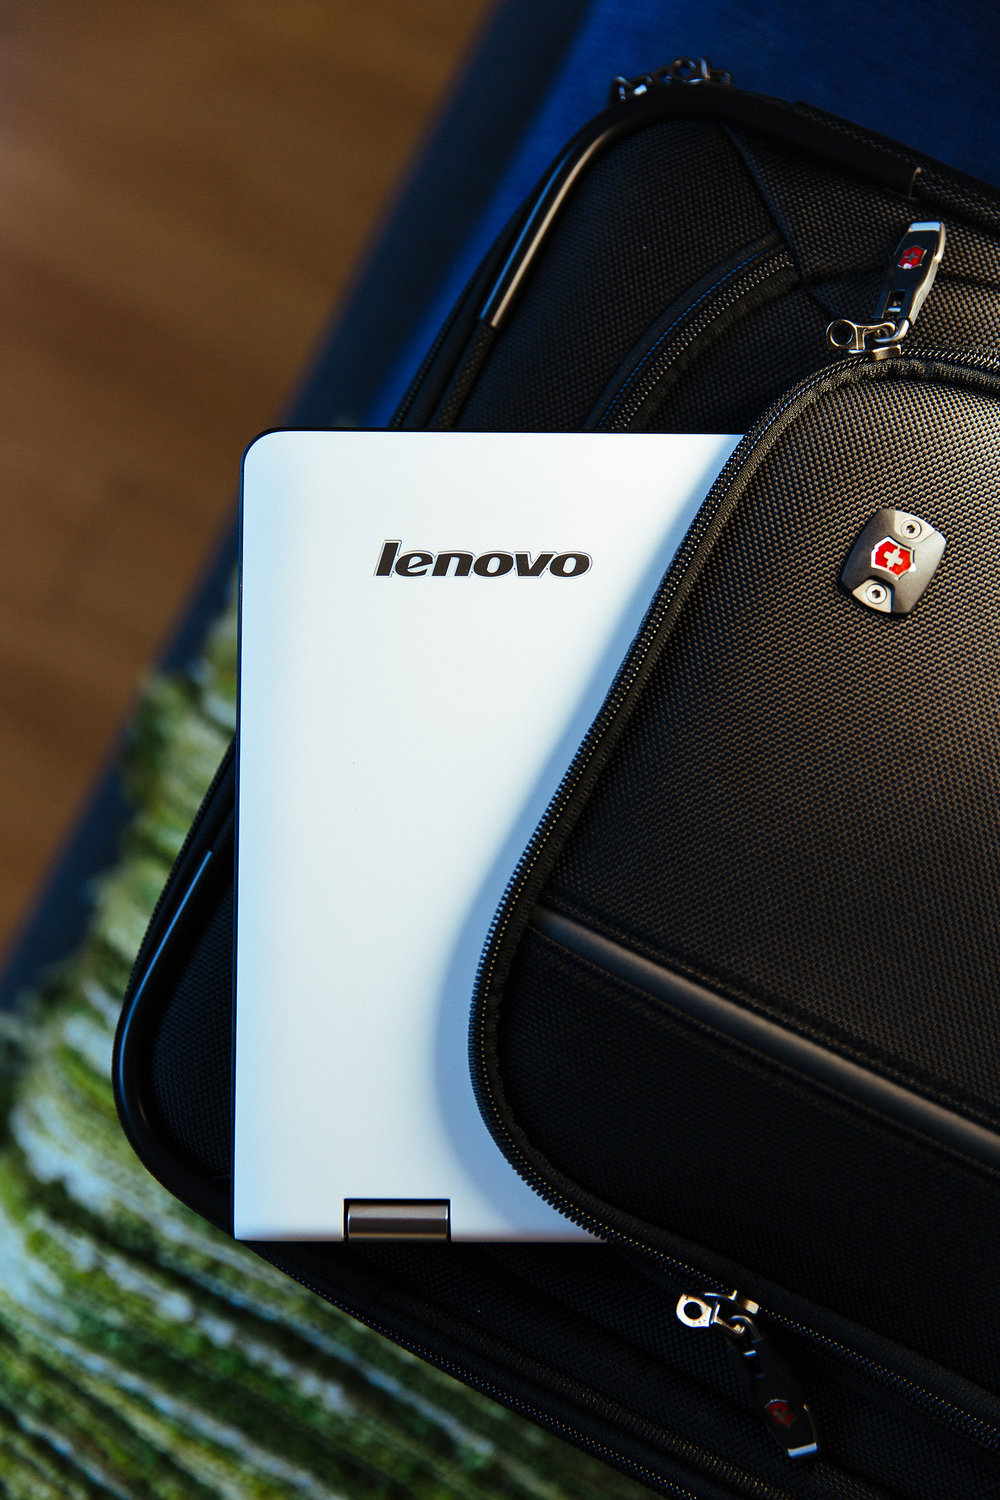 Lenovo Selects for Dave-2 copy.jpg